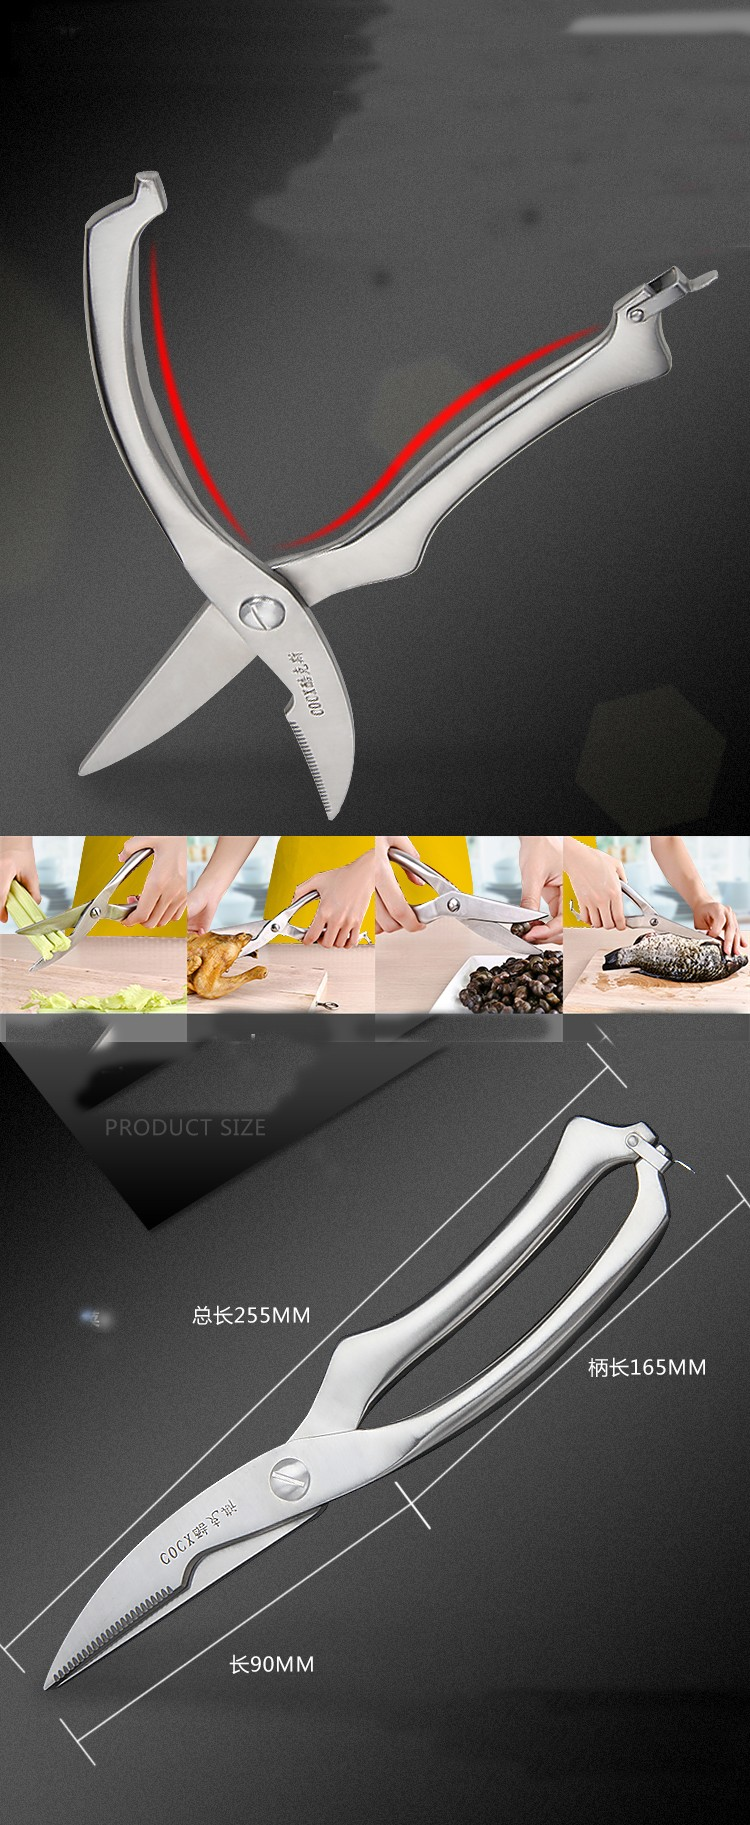 Buy Kitchen scissors Chicken scissors multifunctional kitchen scissors 4mm thick stainless steel bone shear cheap